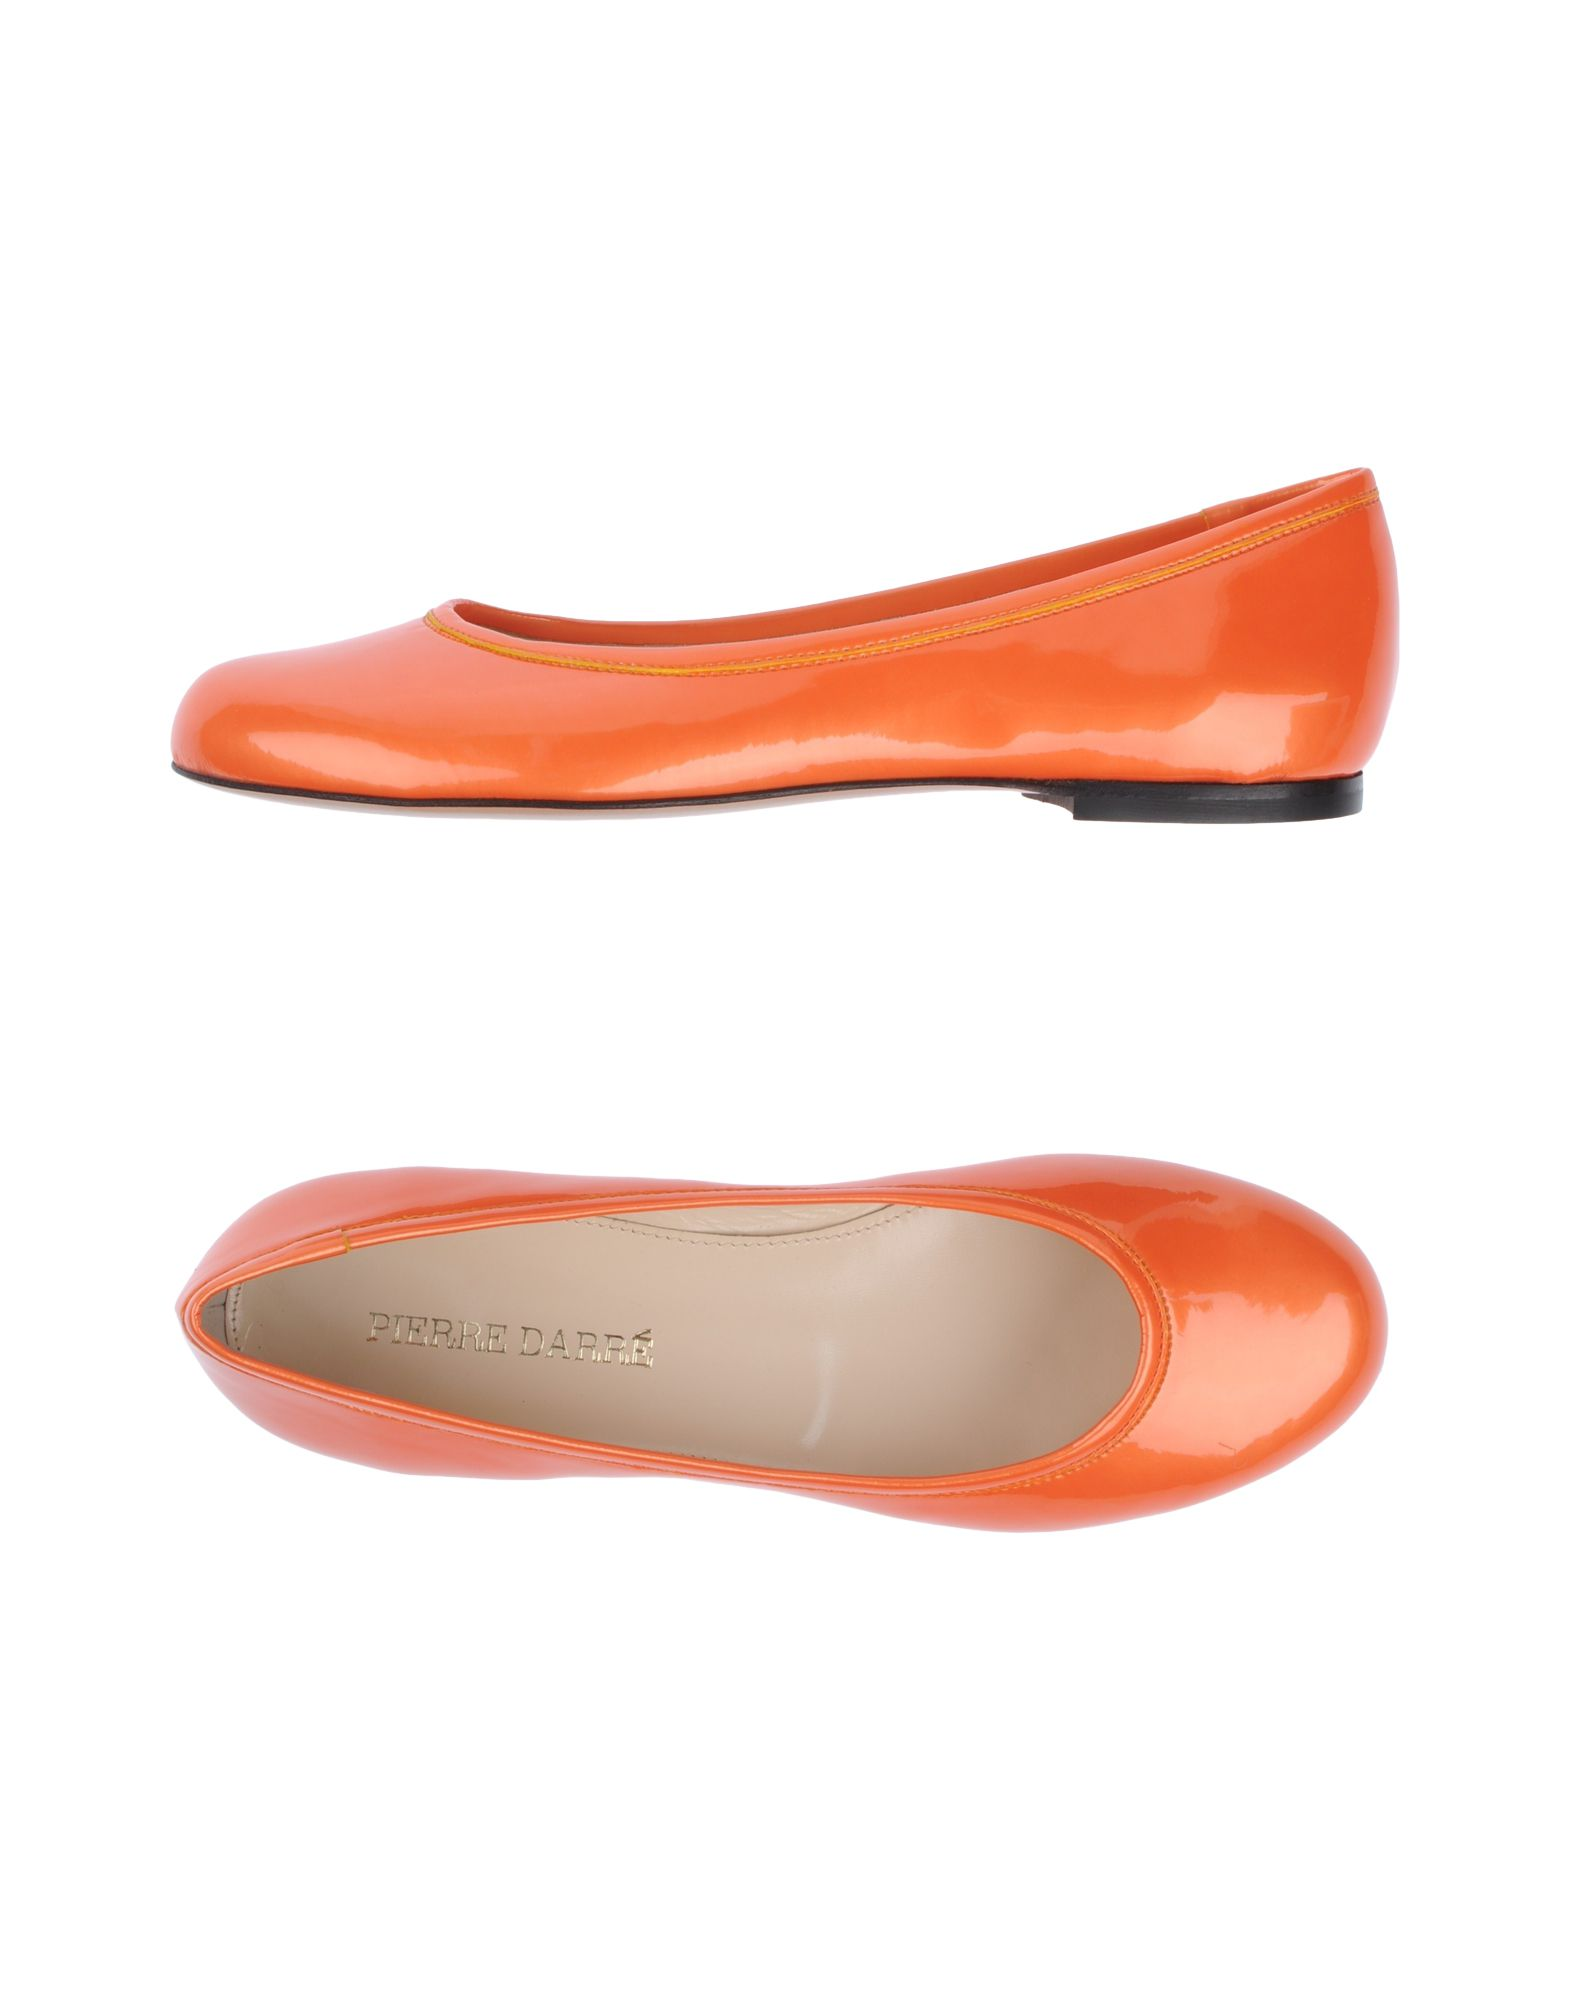 Looking for Orange Shoes? Find Women's Orange Shoes, Men's Orange Shoes and Juniors Orange Shoes at Macy's.